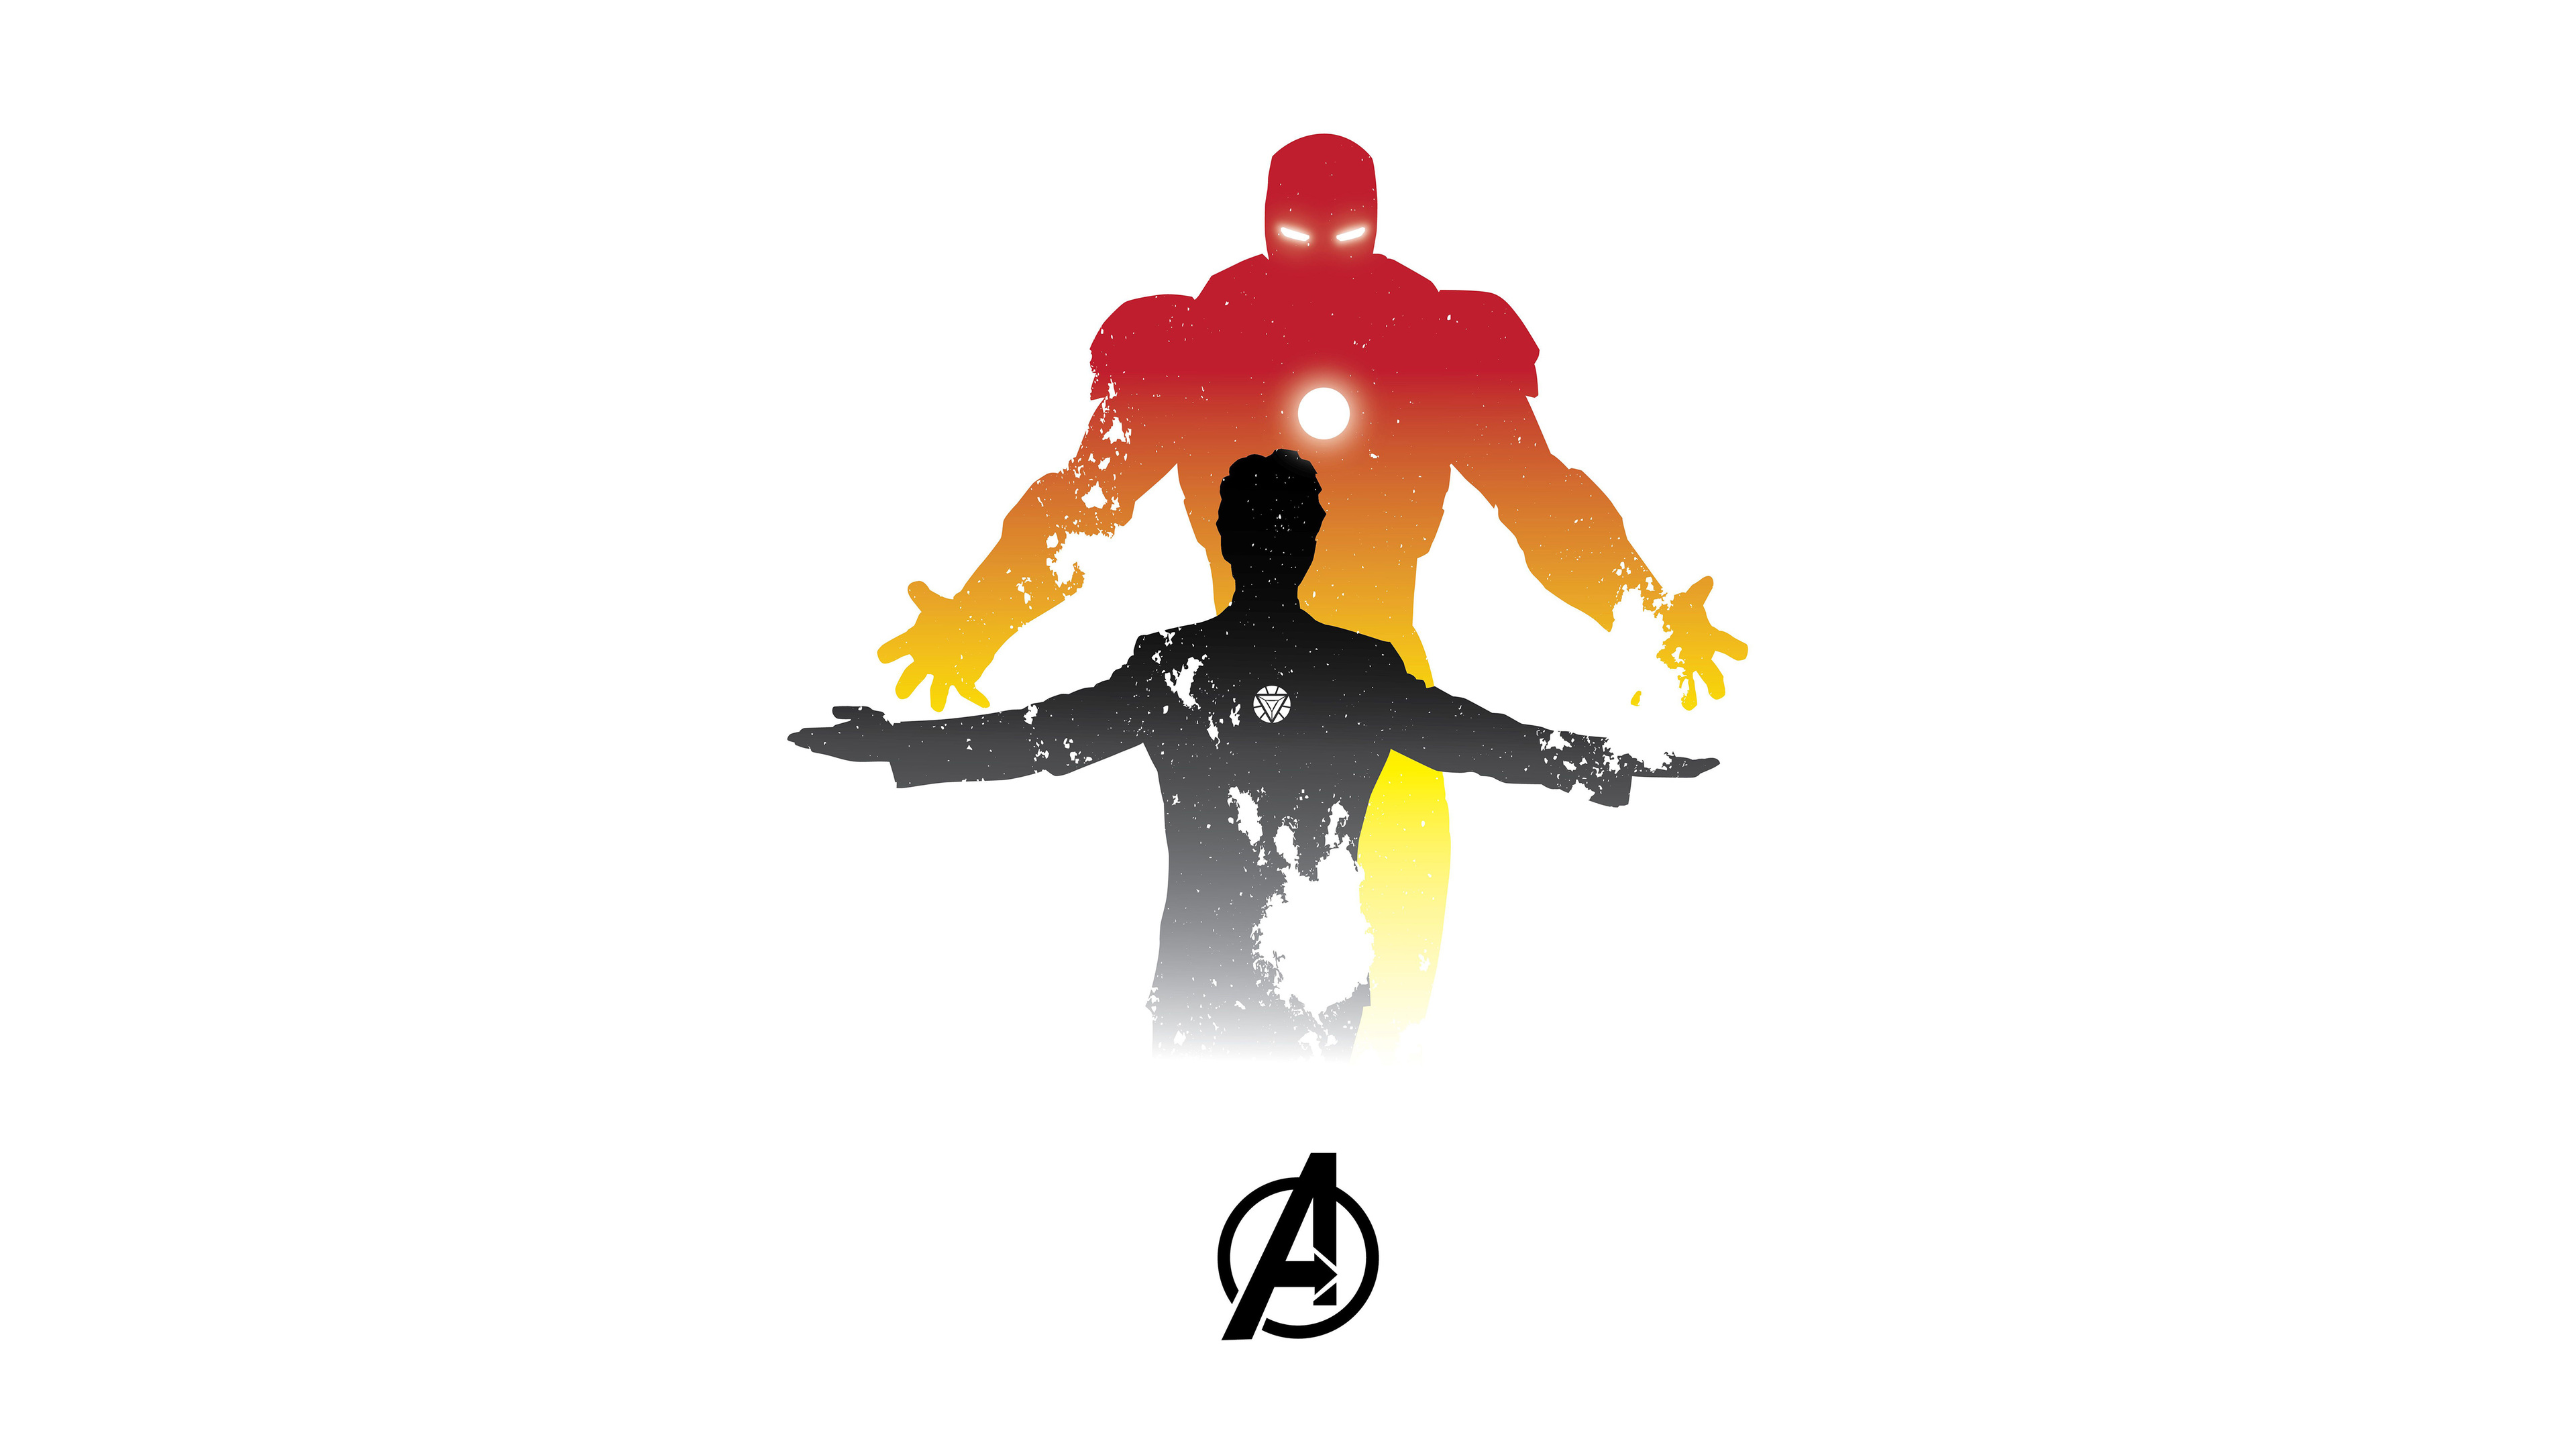 Wallpaper 4k Iron Man Minimalism 5k 4k Wallpapers 5k Wallpapers